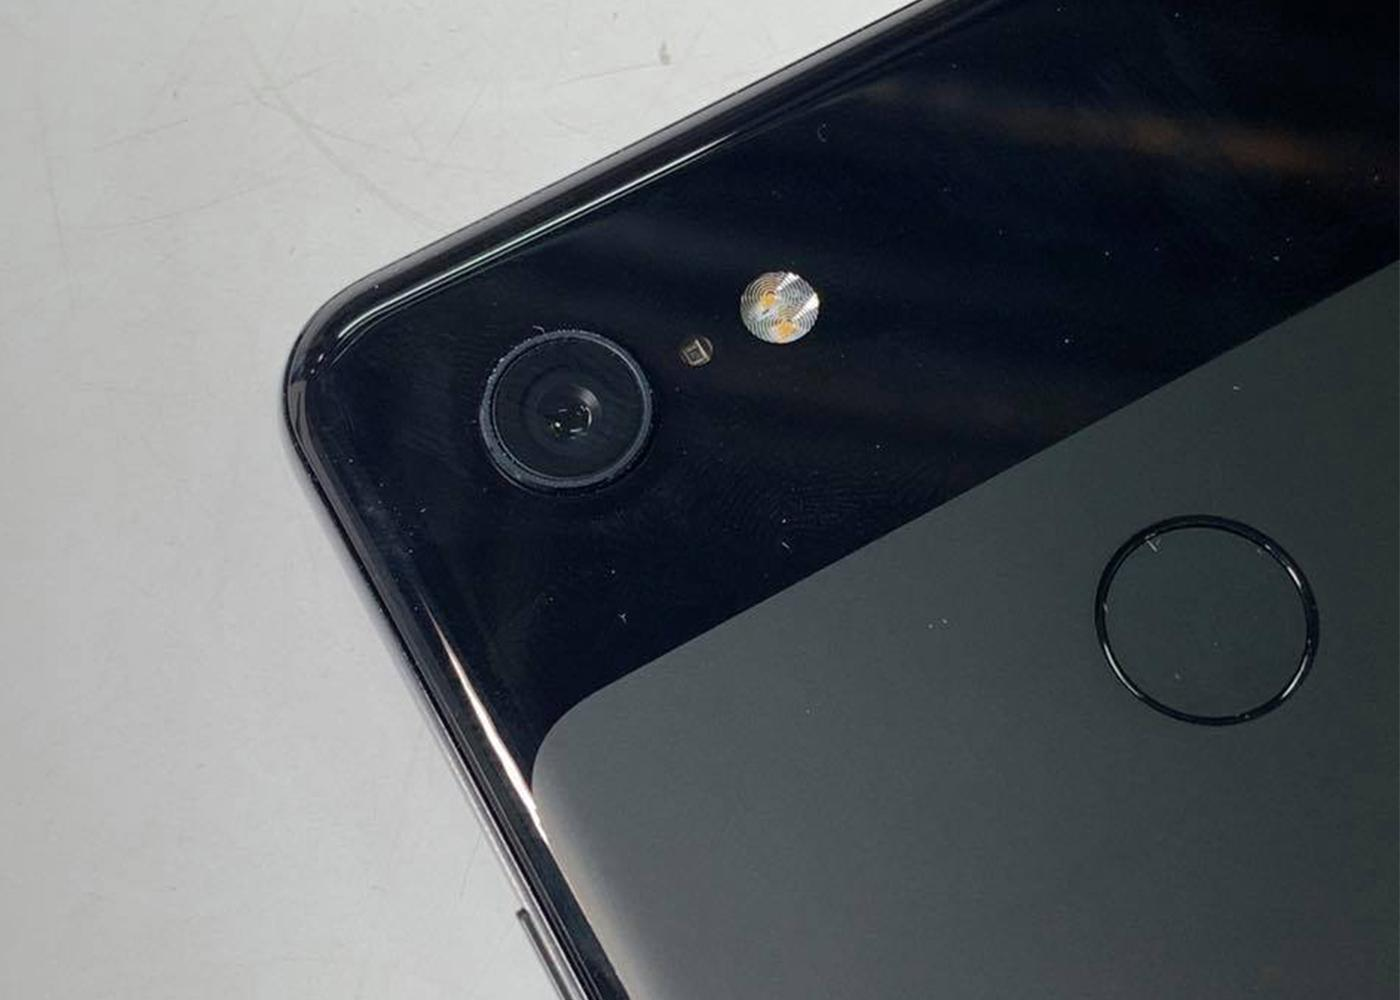 The Pixel 3a would start from USD $ 399, challenging the throne of the mid-range